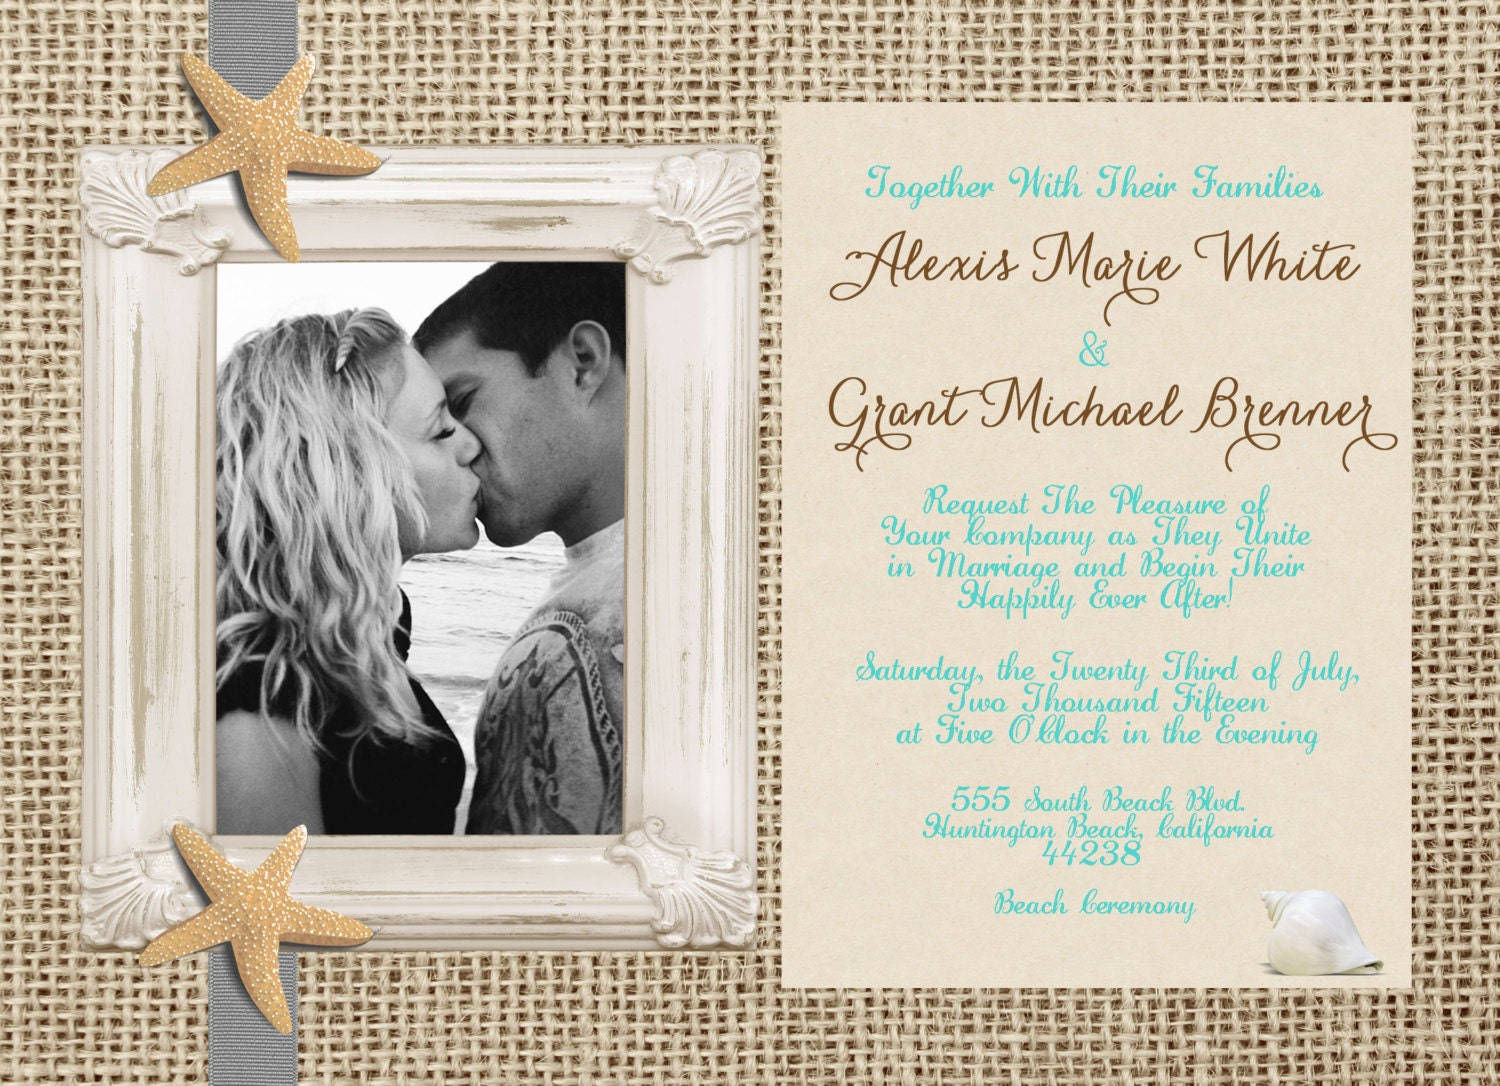 Wedding Invitations With Burlap: Rustic Beach Wedding Invitation Burlap Invitation Photo